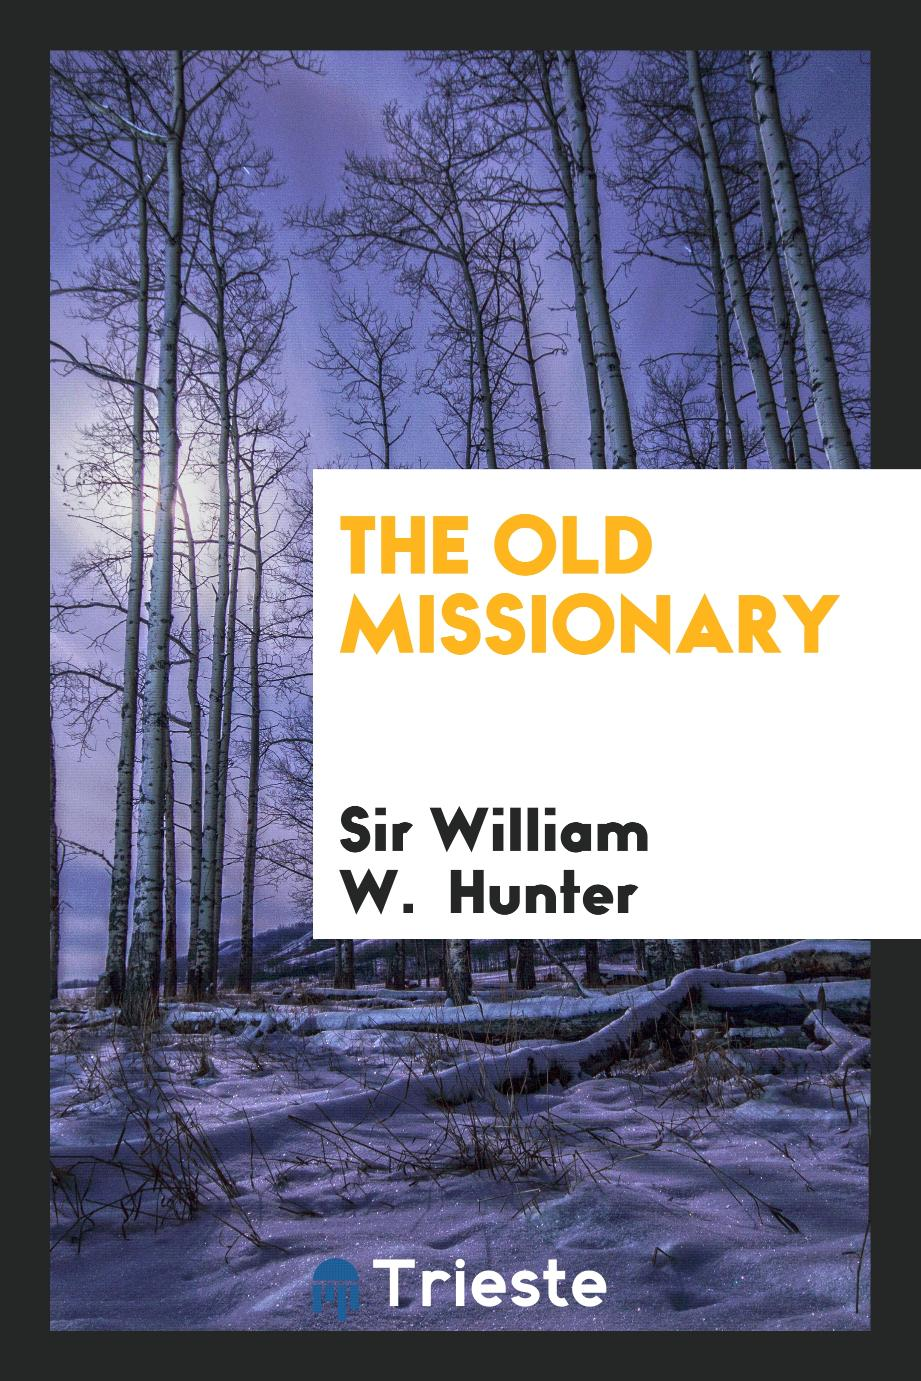 The Old Missionary